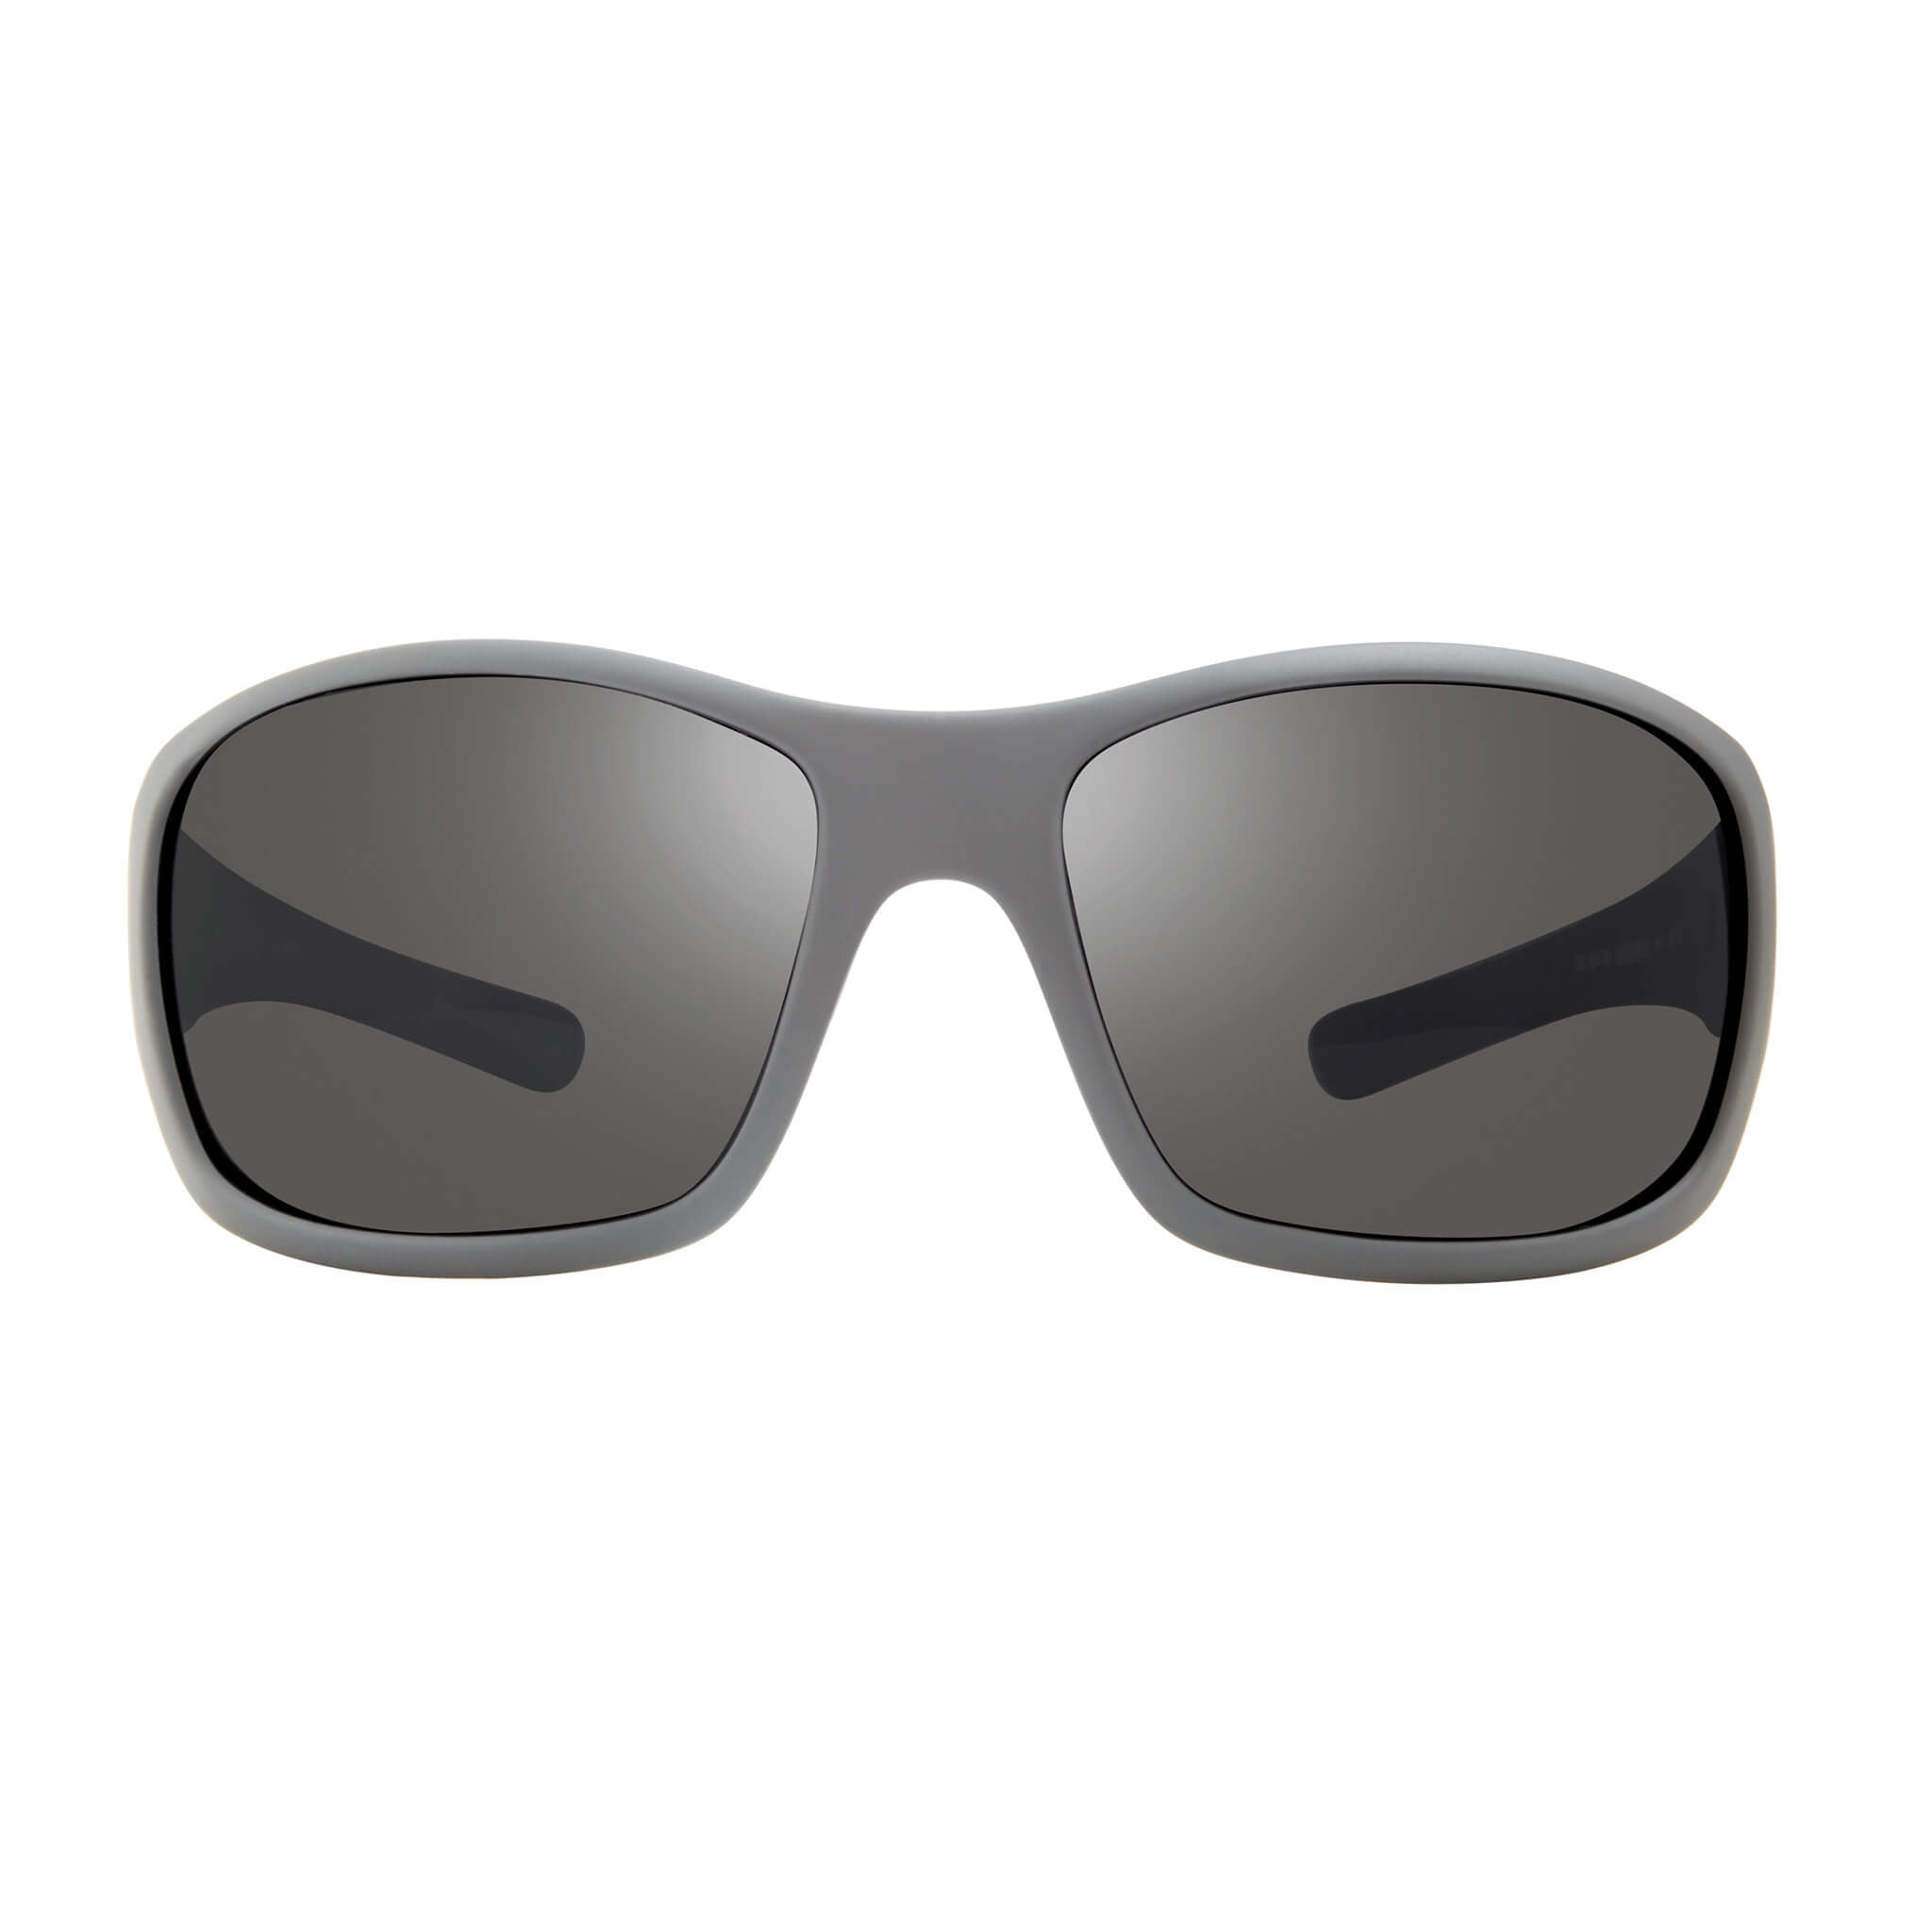 Maverick Matte graphite + graphite lens:Front view of Bear Grylls Revo Matte Graphite with Graphite lens sunglasses